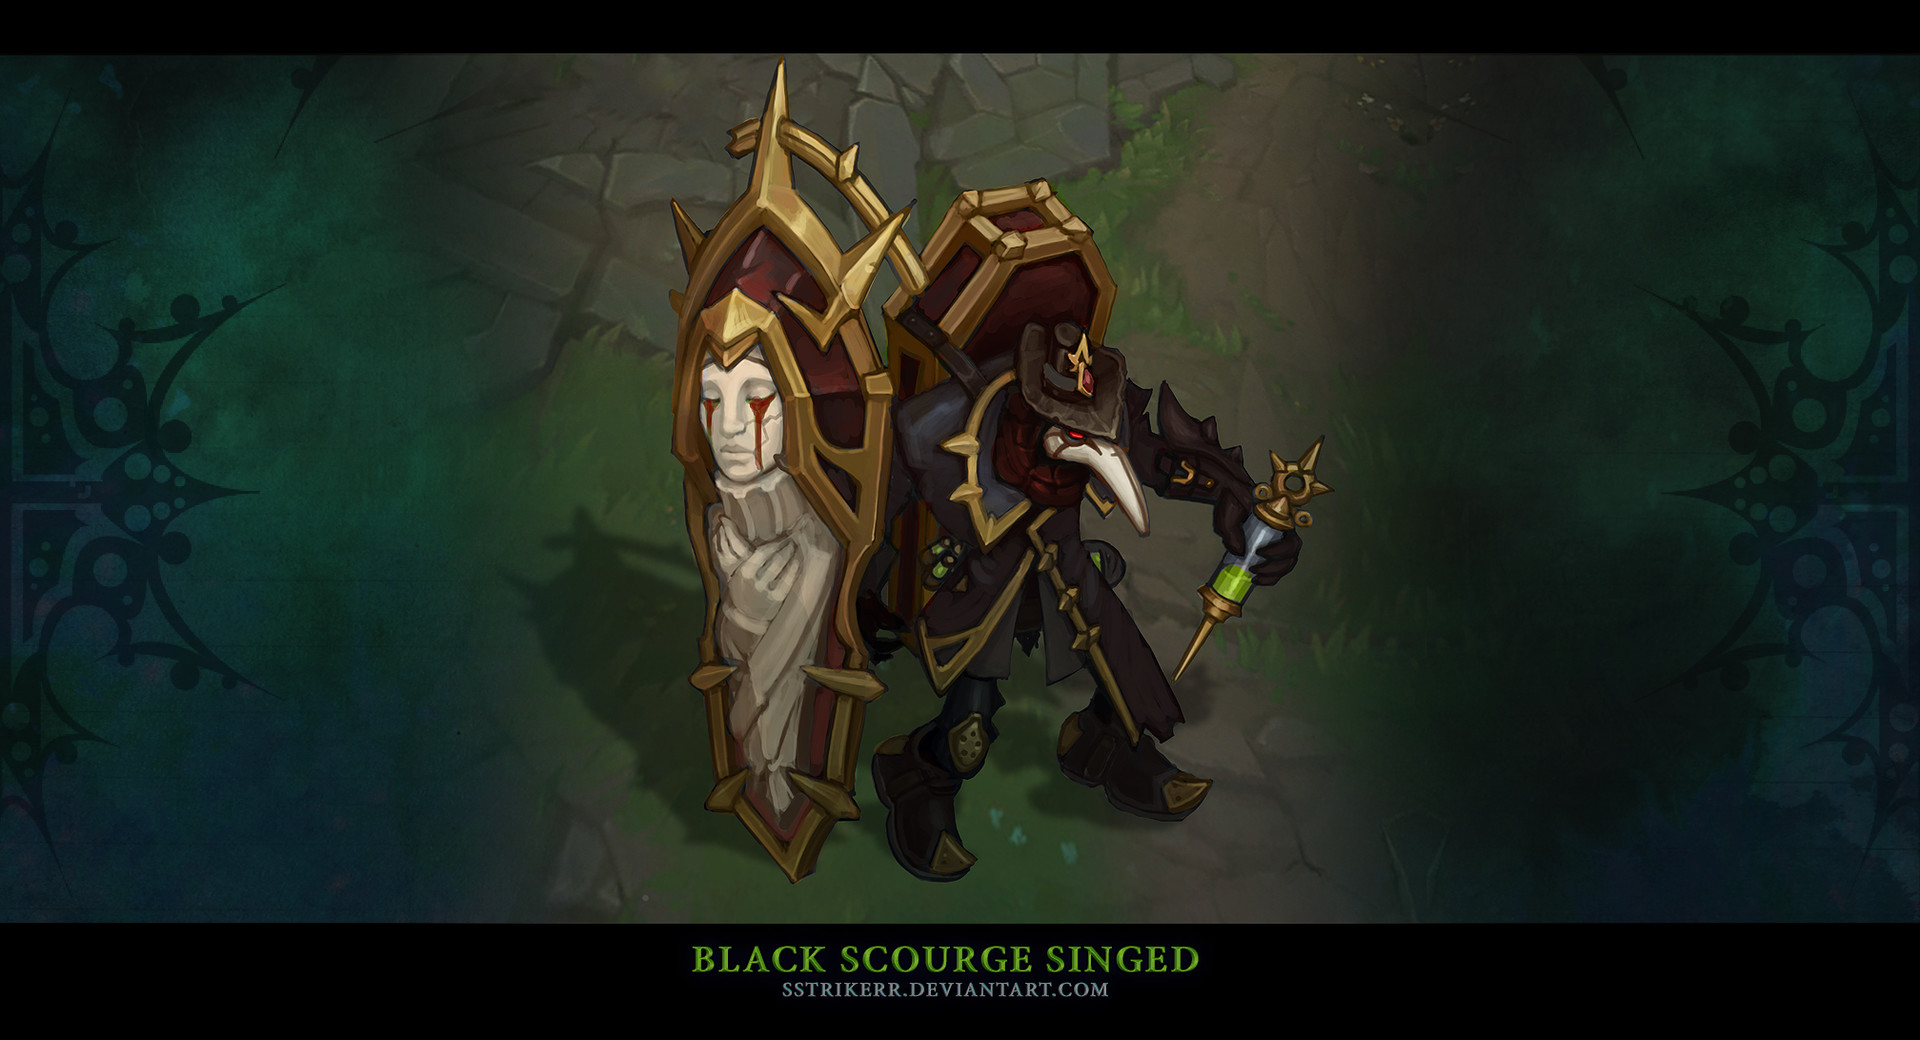 Black Scourge Singed - LeagueSales